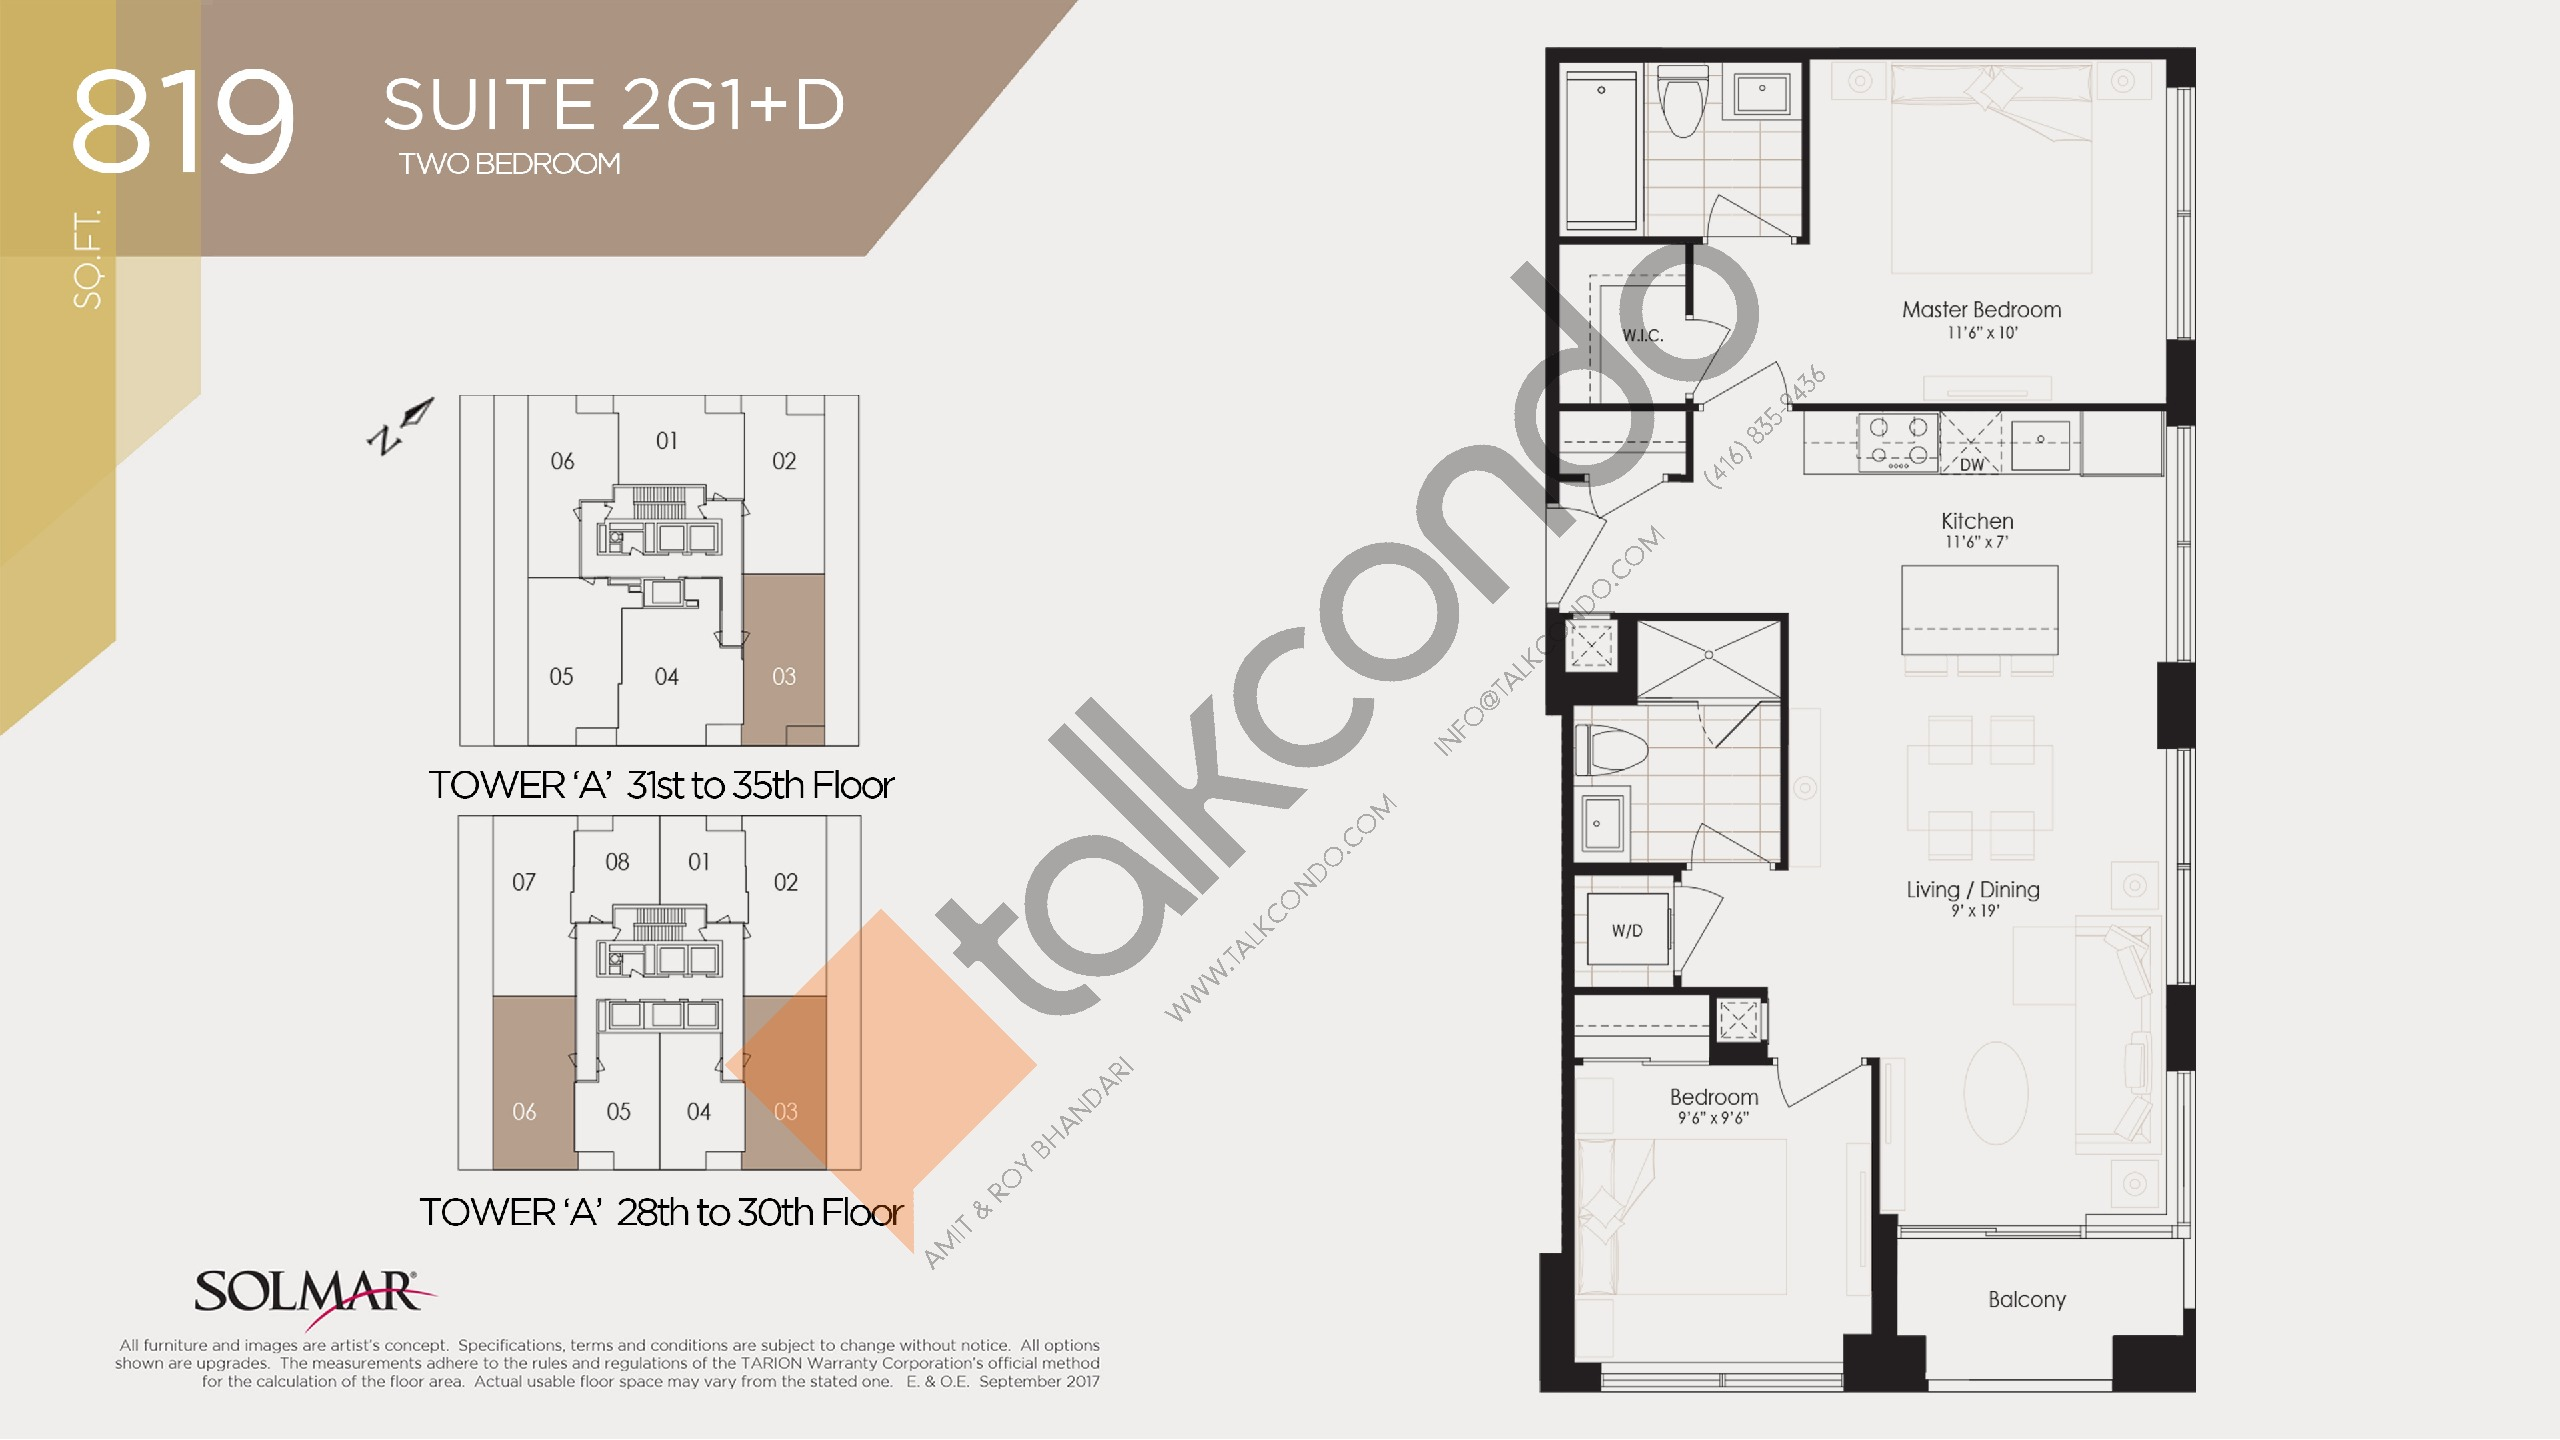 Edge Towers Suite 2g D 865 Sq Ft 2 Bedrooms